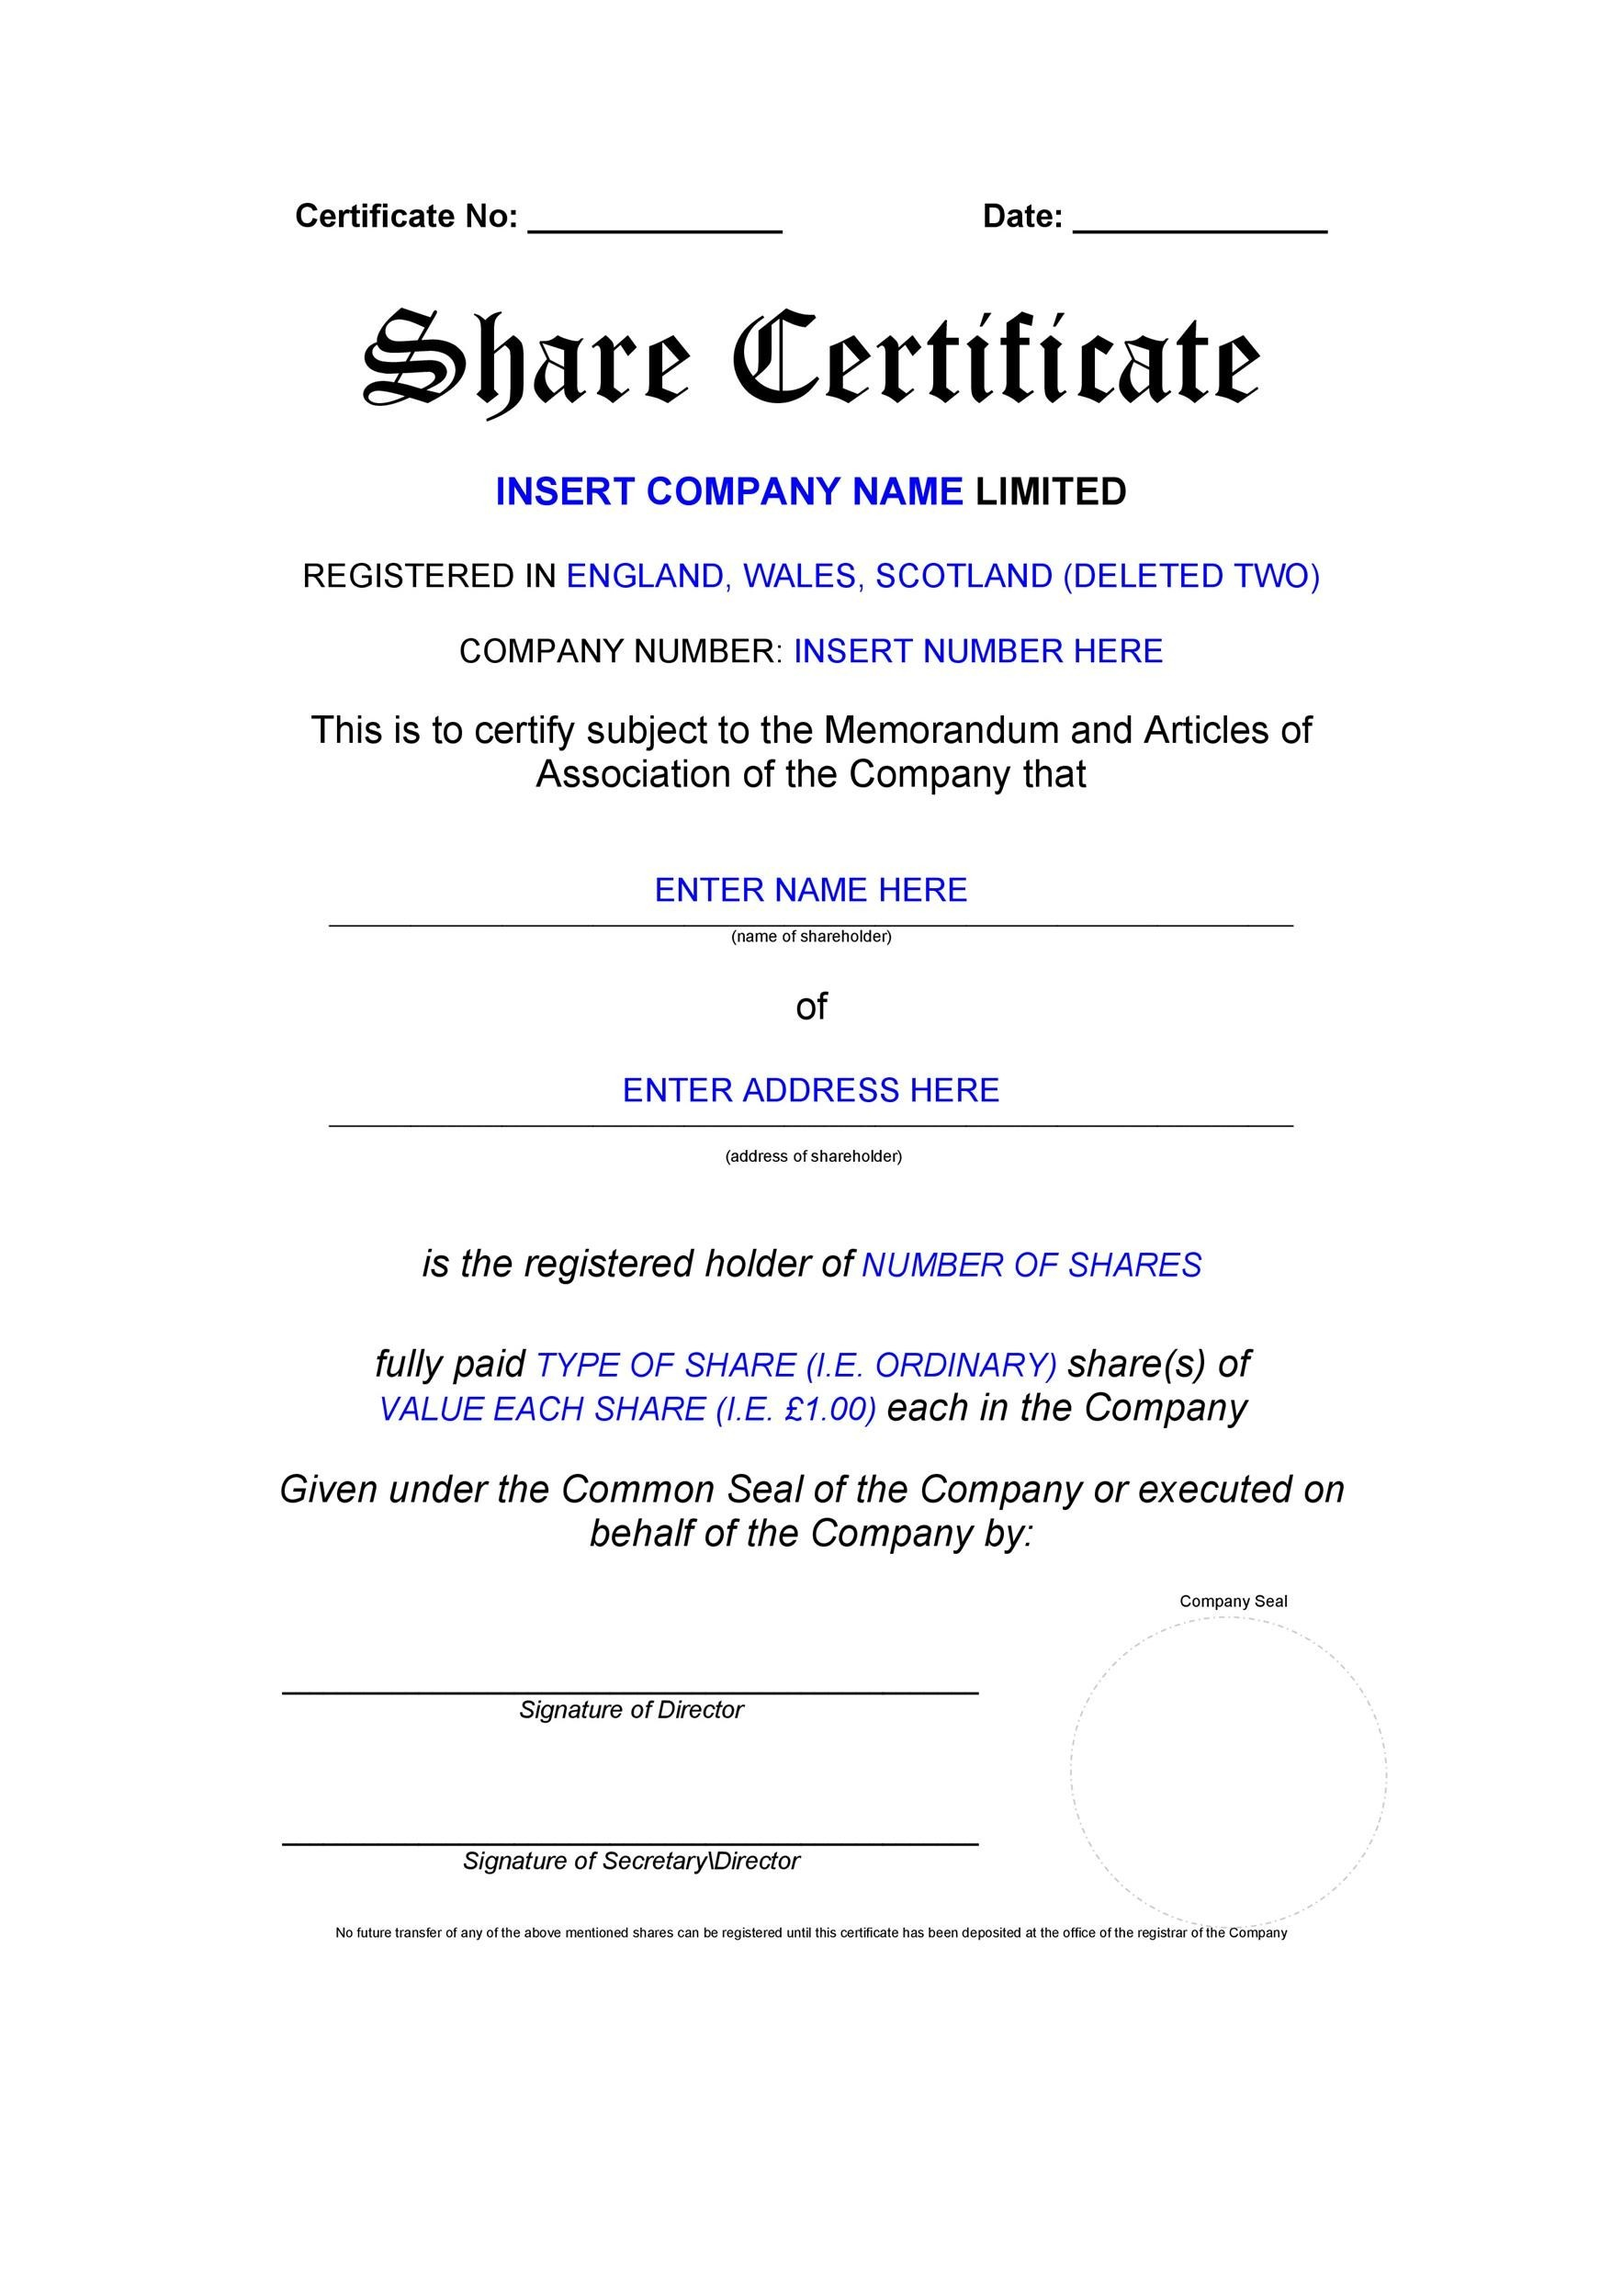 40 free stock certificate templates word pdf template lab printable stock certificate template 40 yelopaper Images